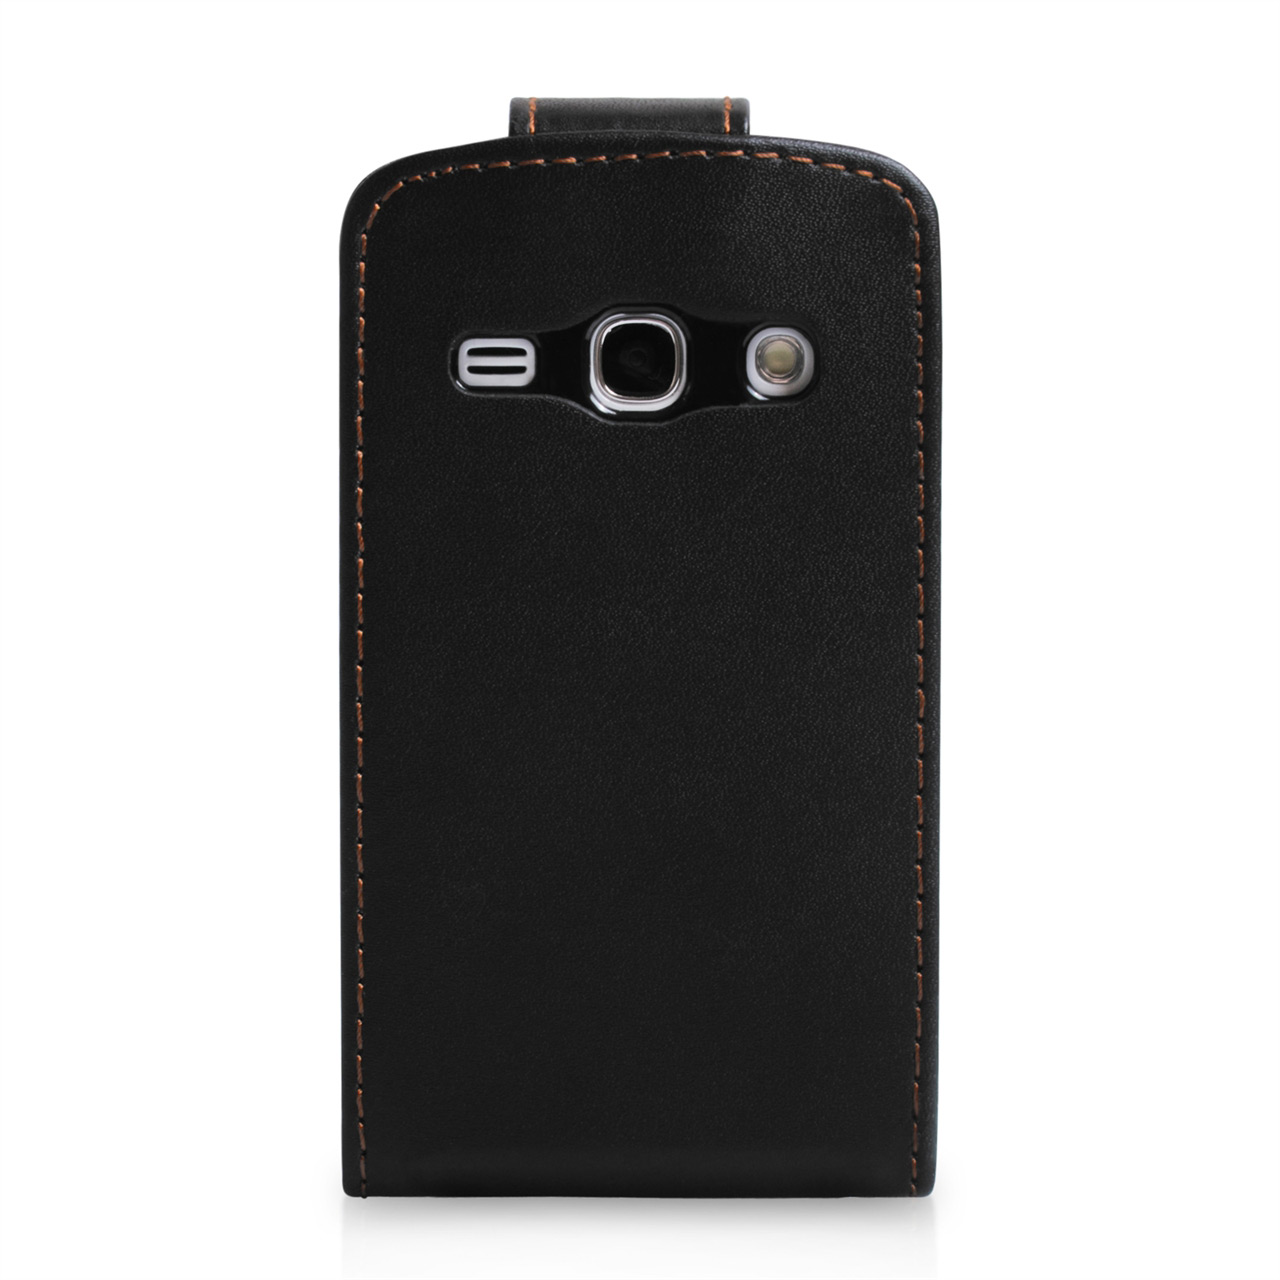 YouSave Samsung Galaxy Fame Leather Effect Flip Case - Black